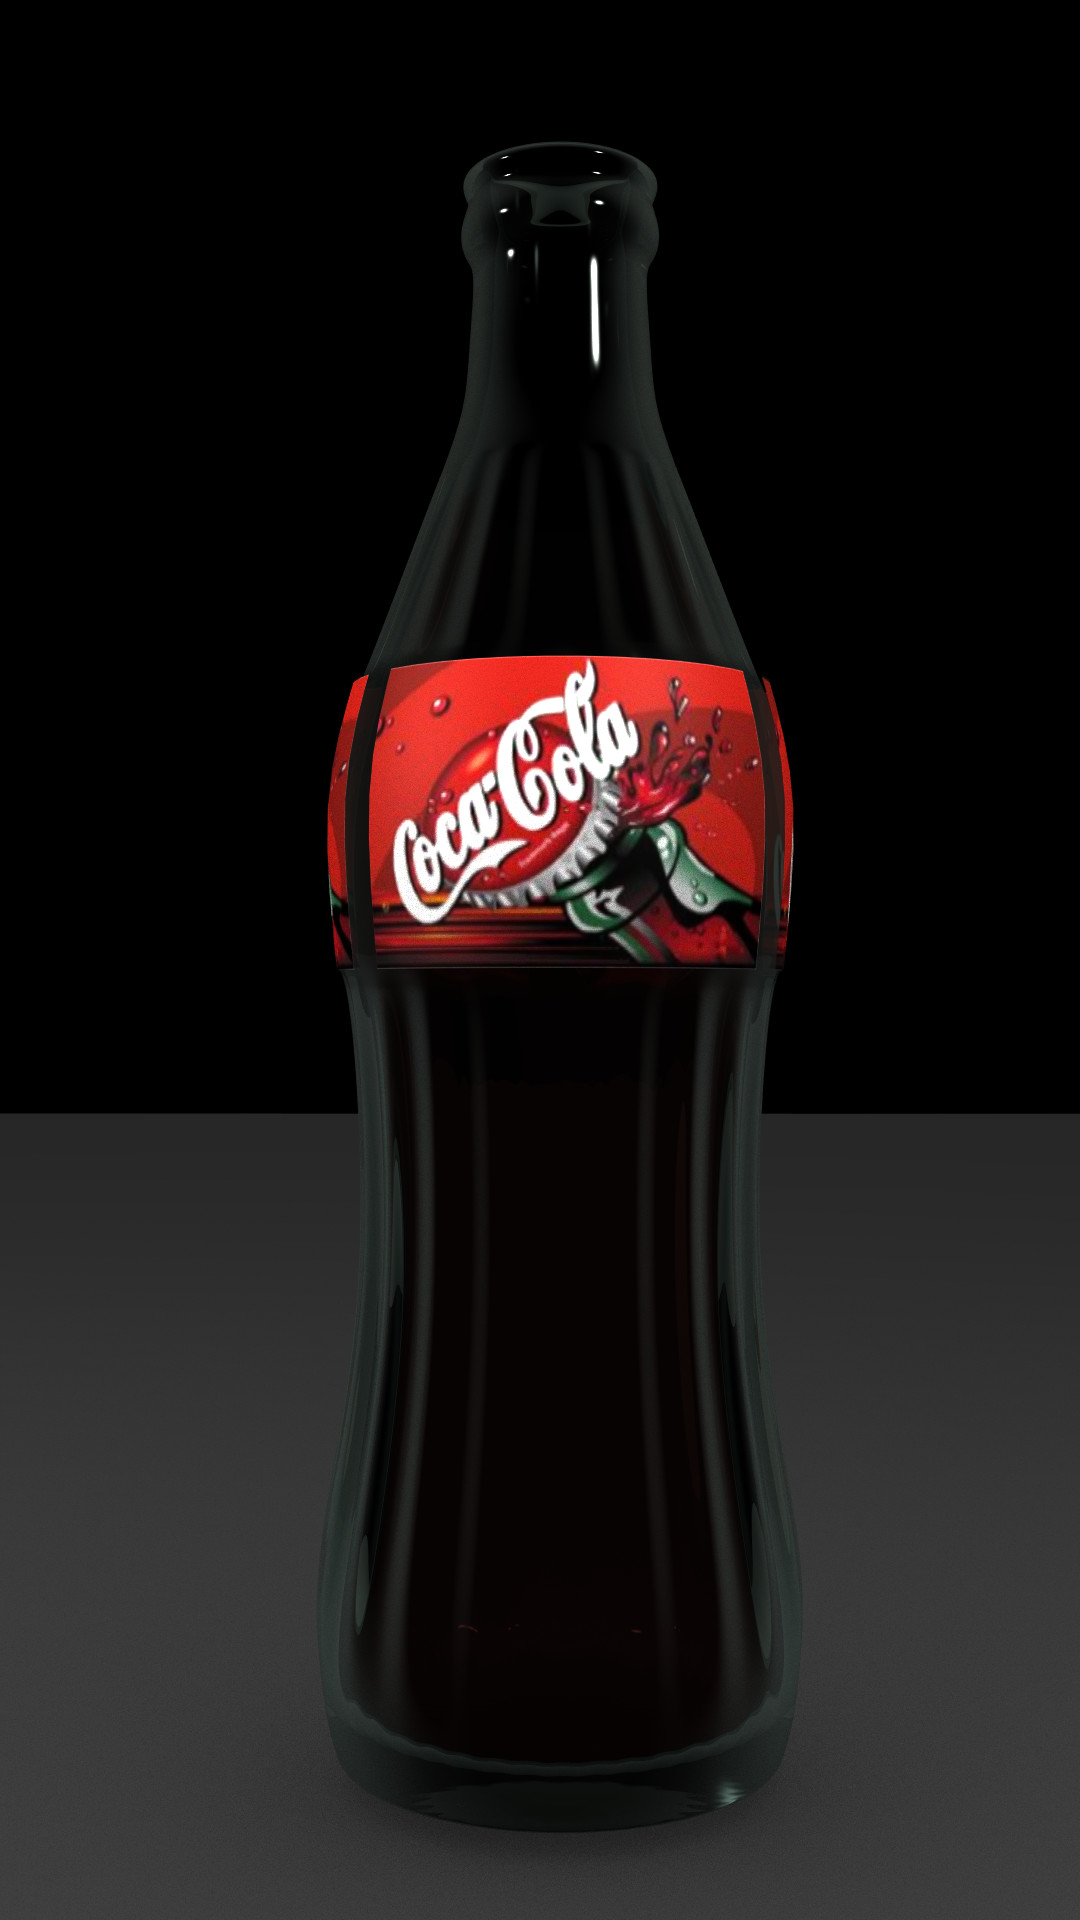 Juan antonio escoto coke